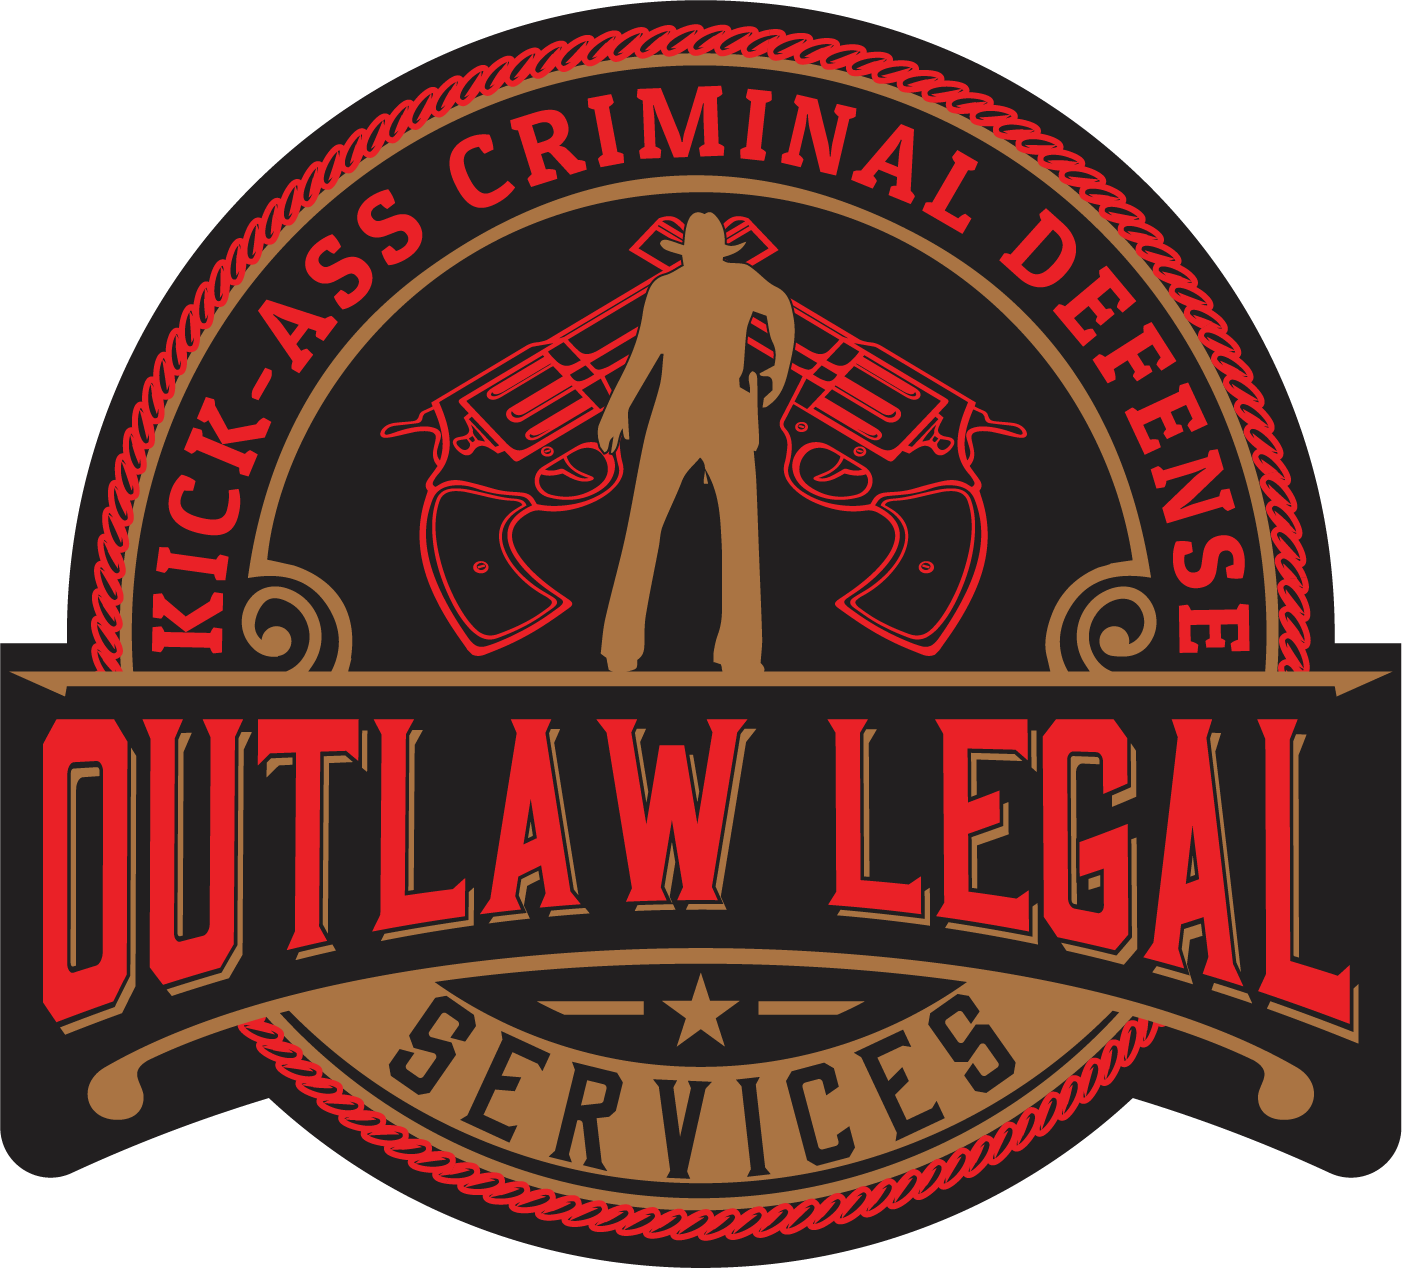 Outlaw Legal Services Utahs best criminal defense